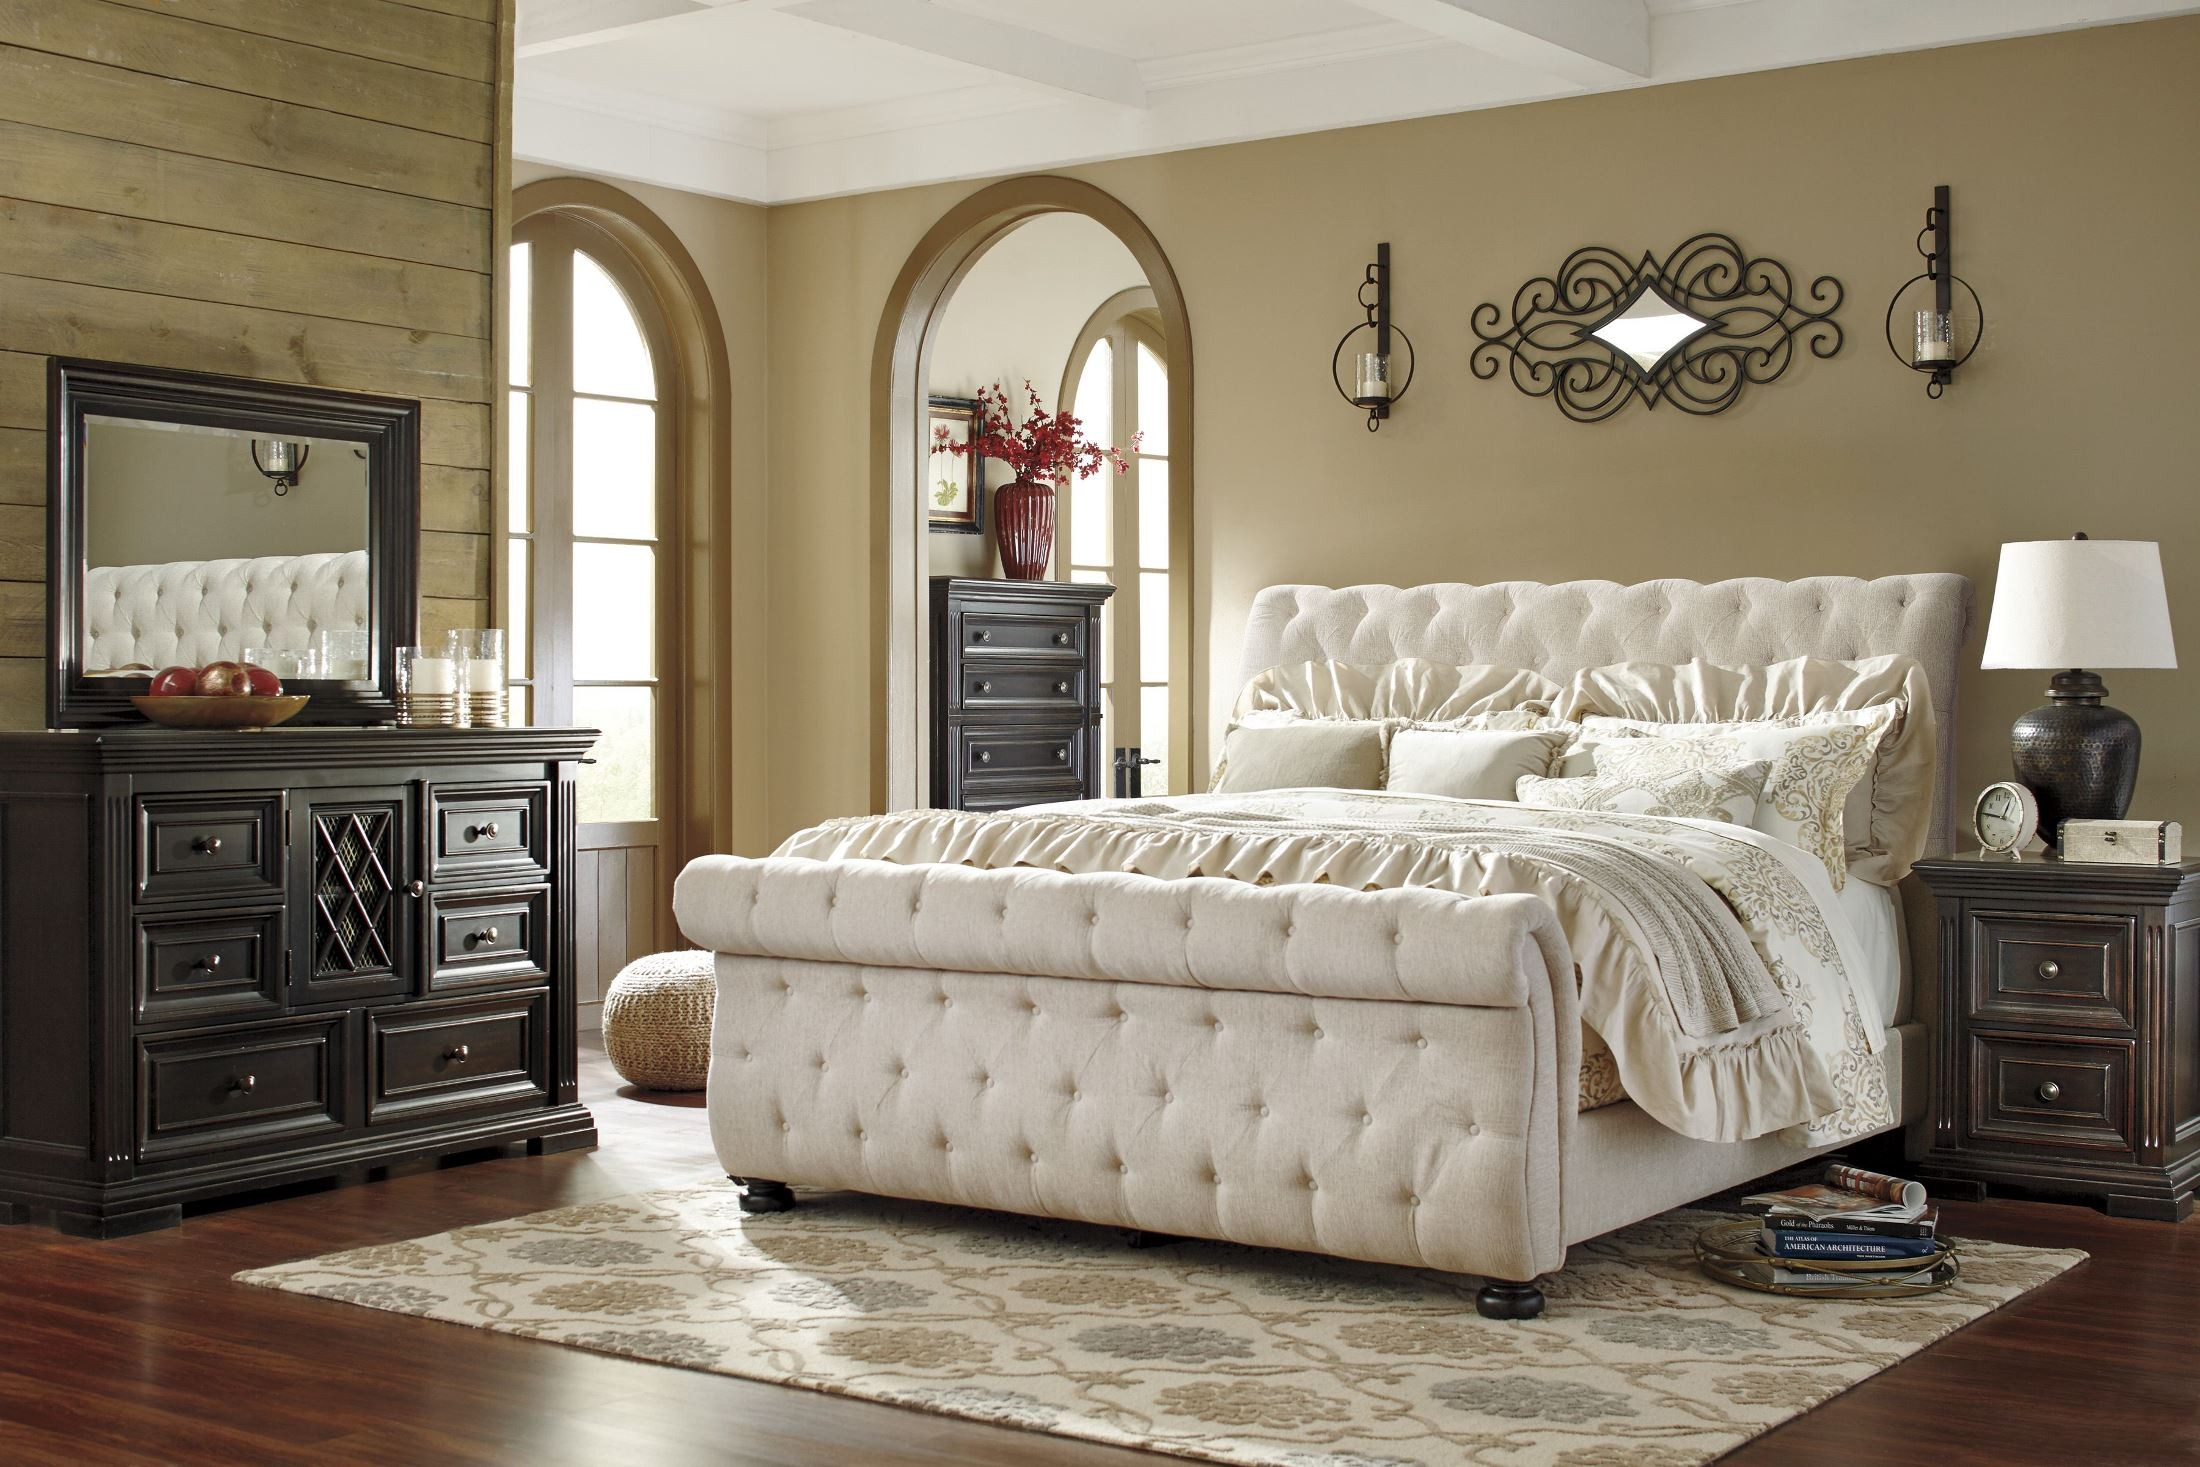 willenburg linen king upholstered sleigh bed from ashley coleman furniture. Black Bedroom Furniture Sets. Home Design Ideas